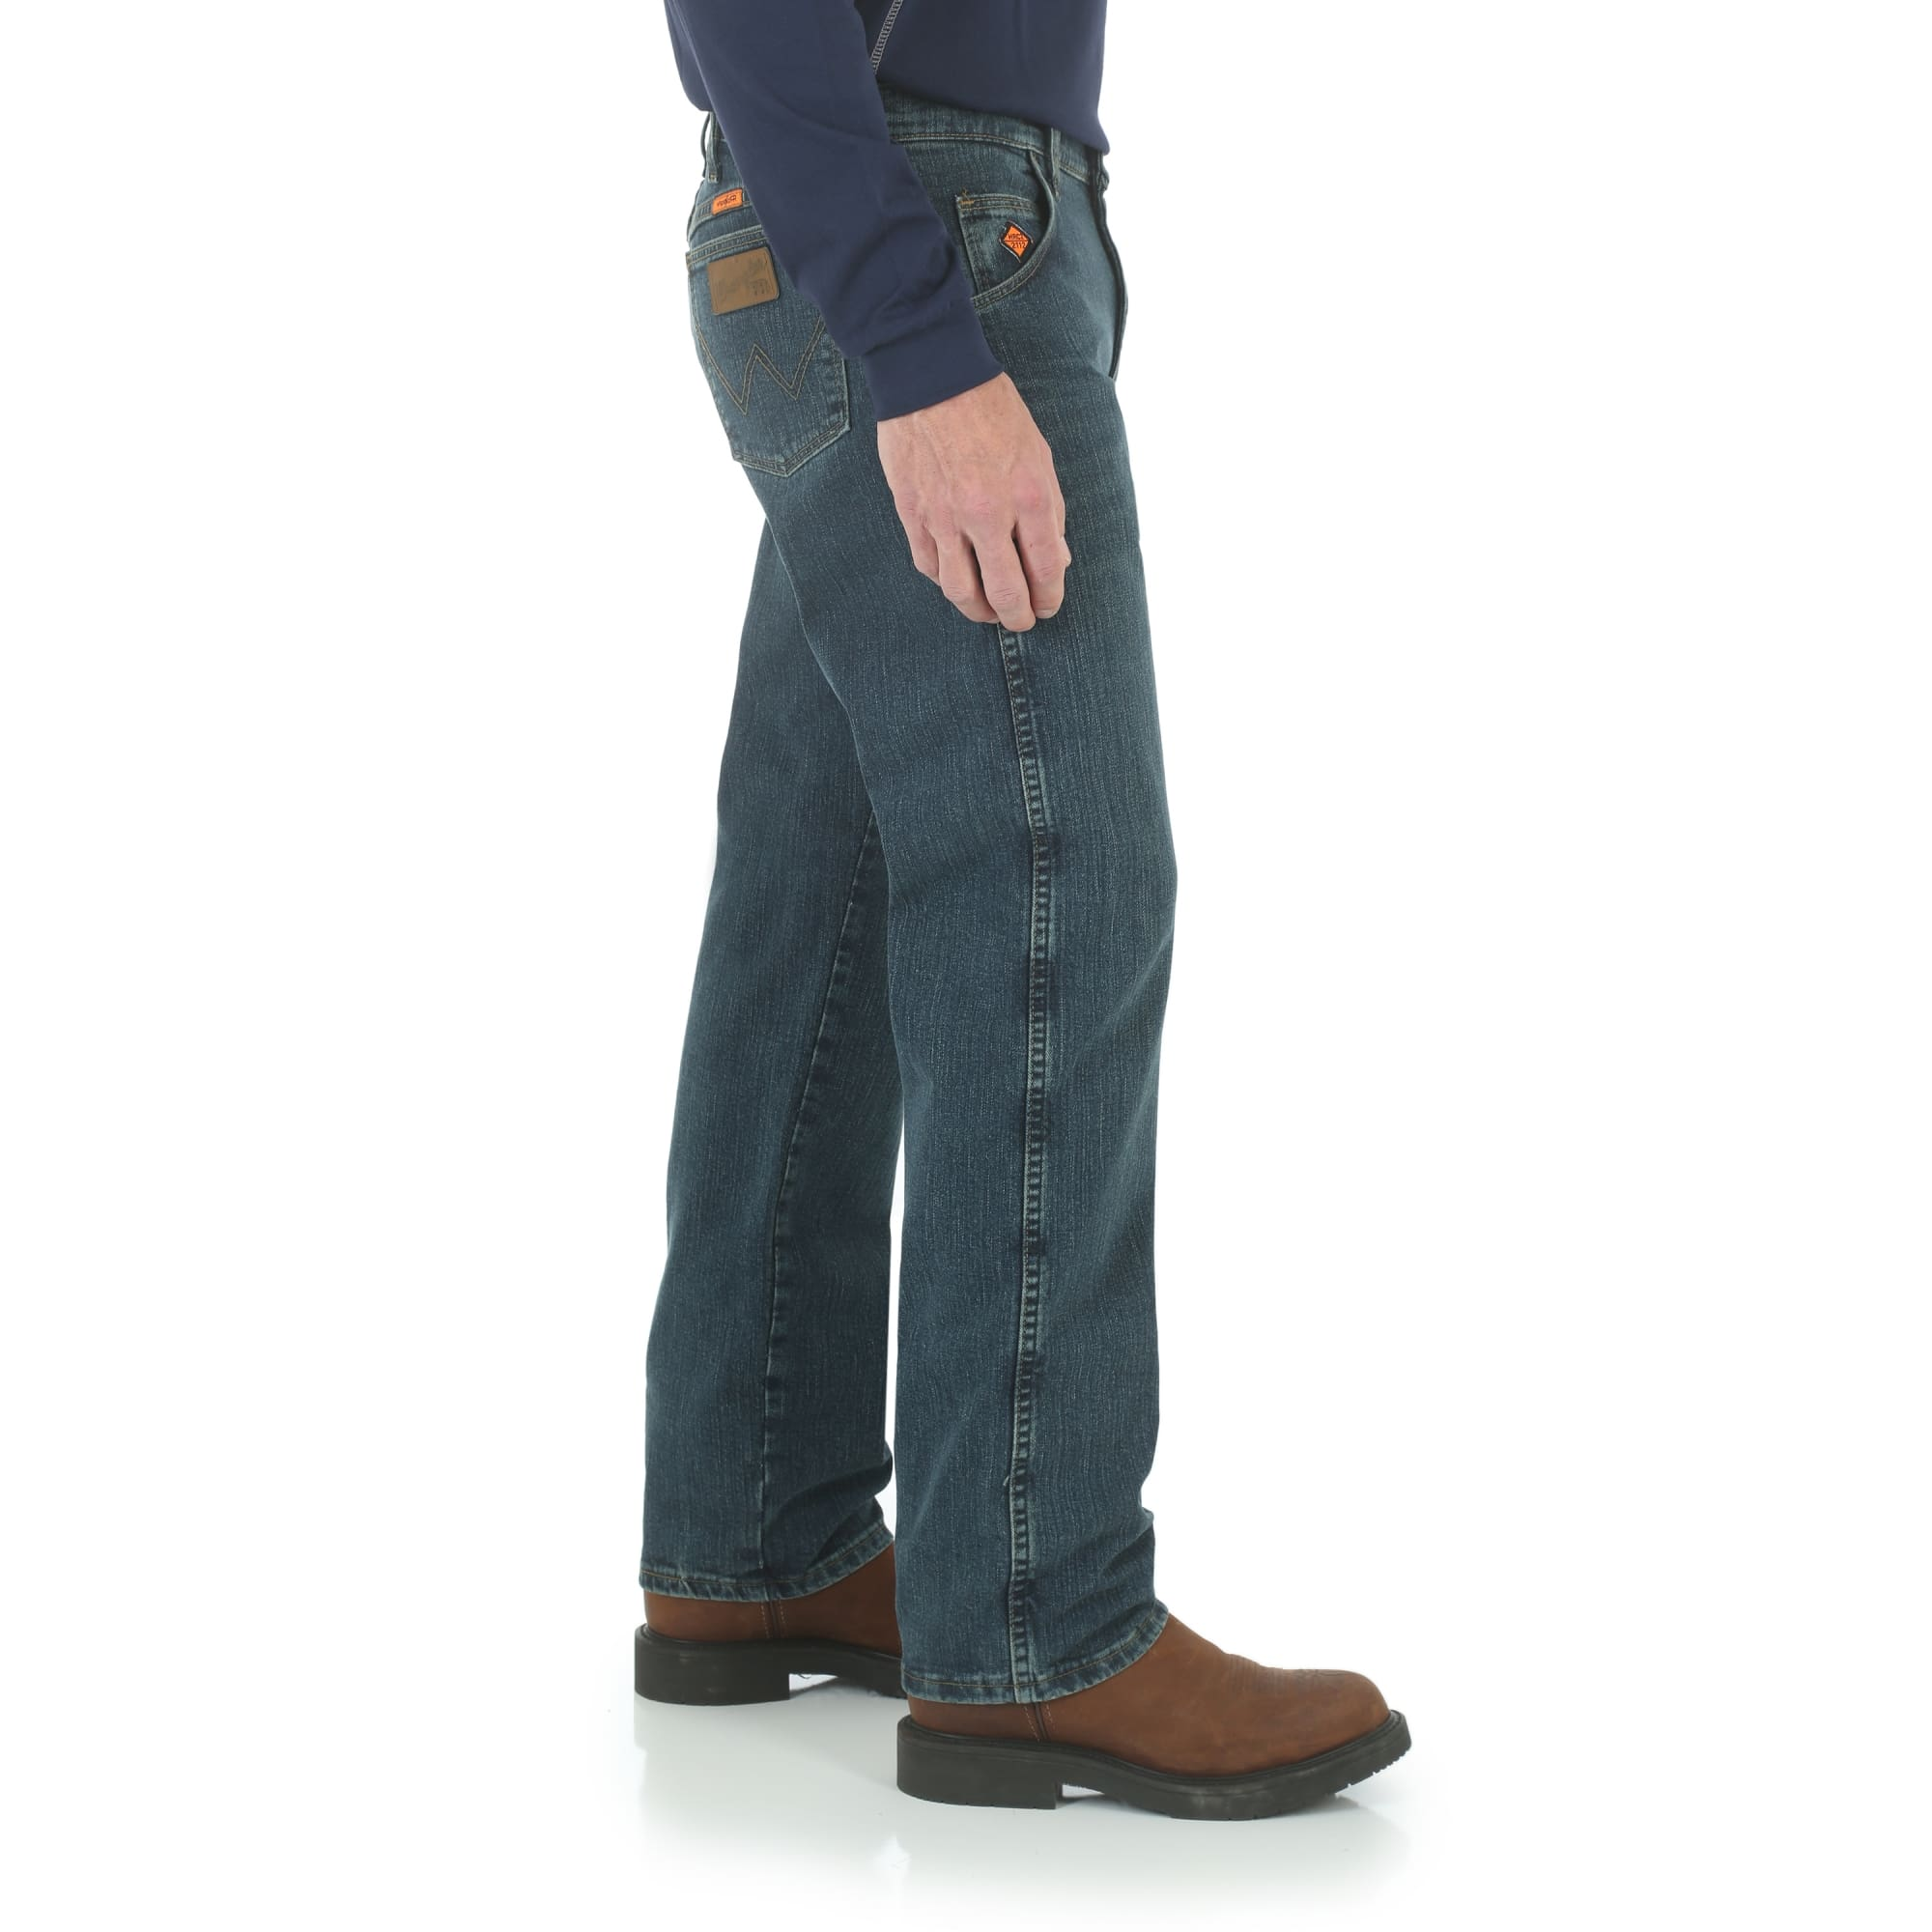 in p comfort style on pull corduroy jeans skinny refined intertwined jag comforter tfjkdzk nora pullon waist and c